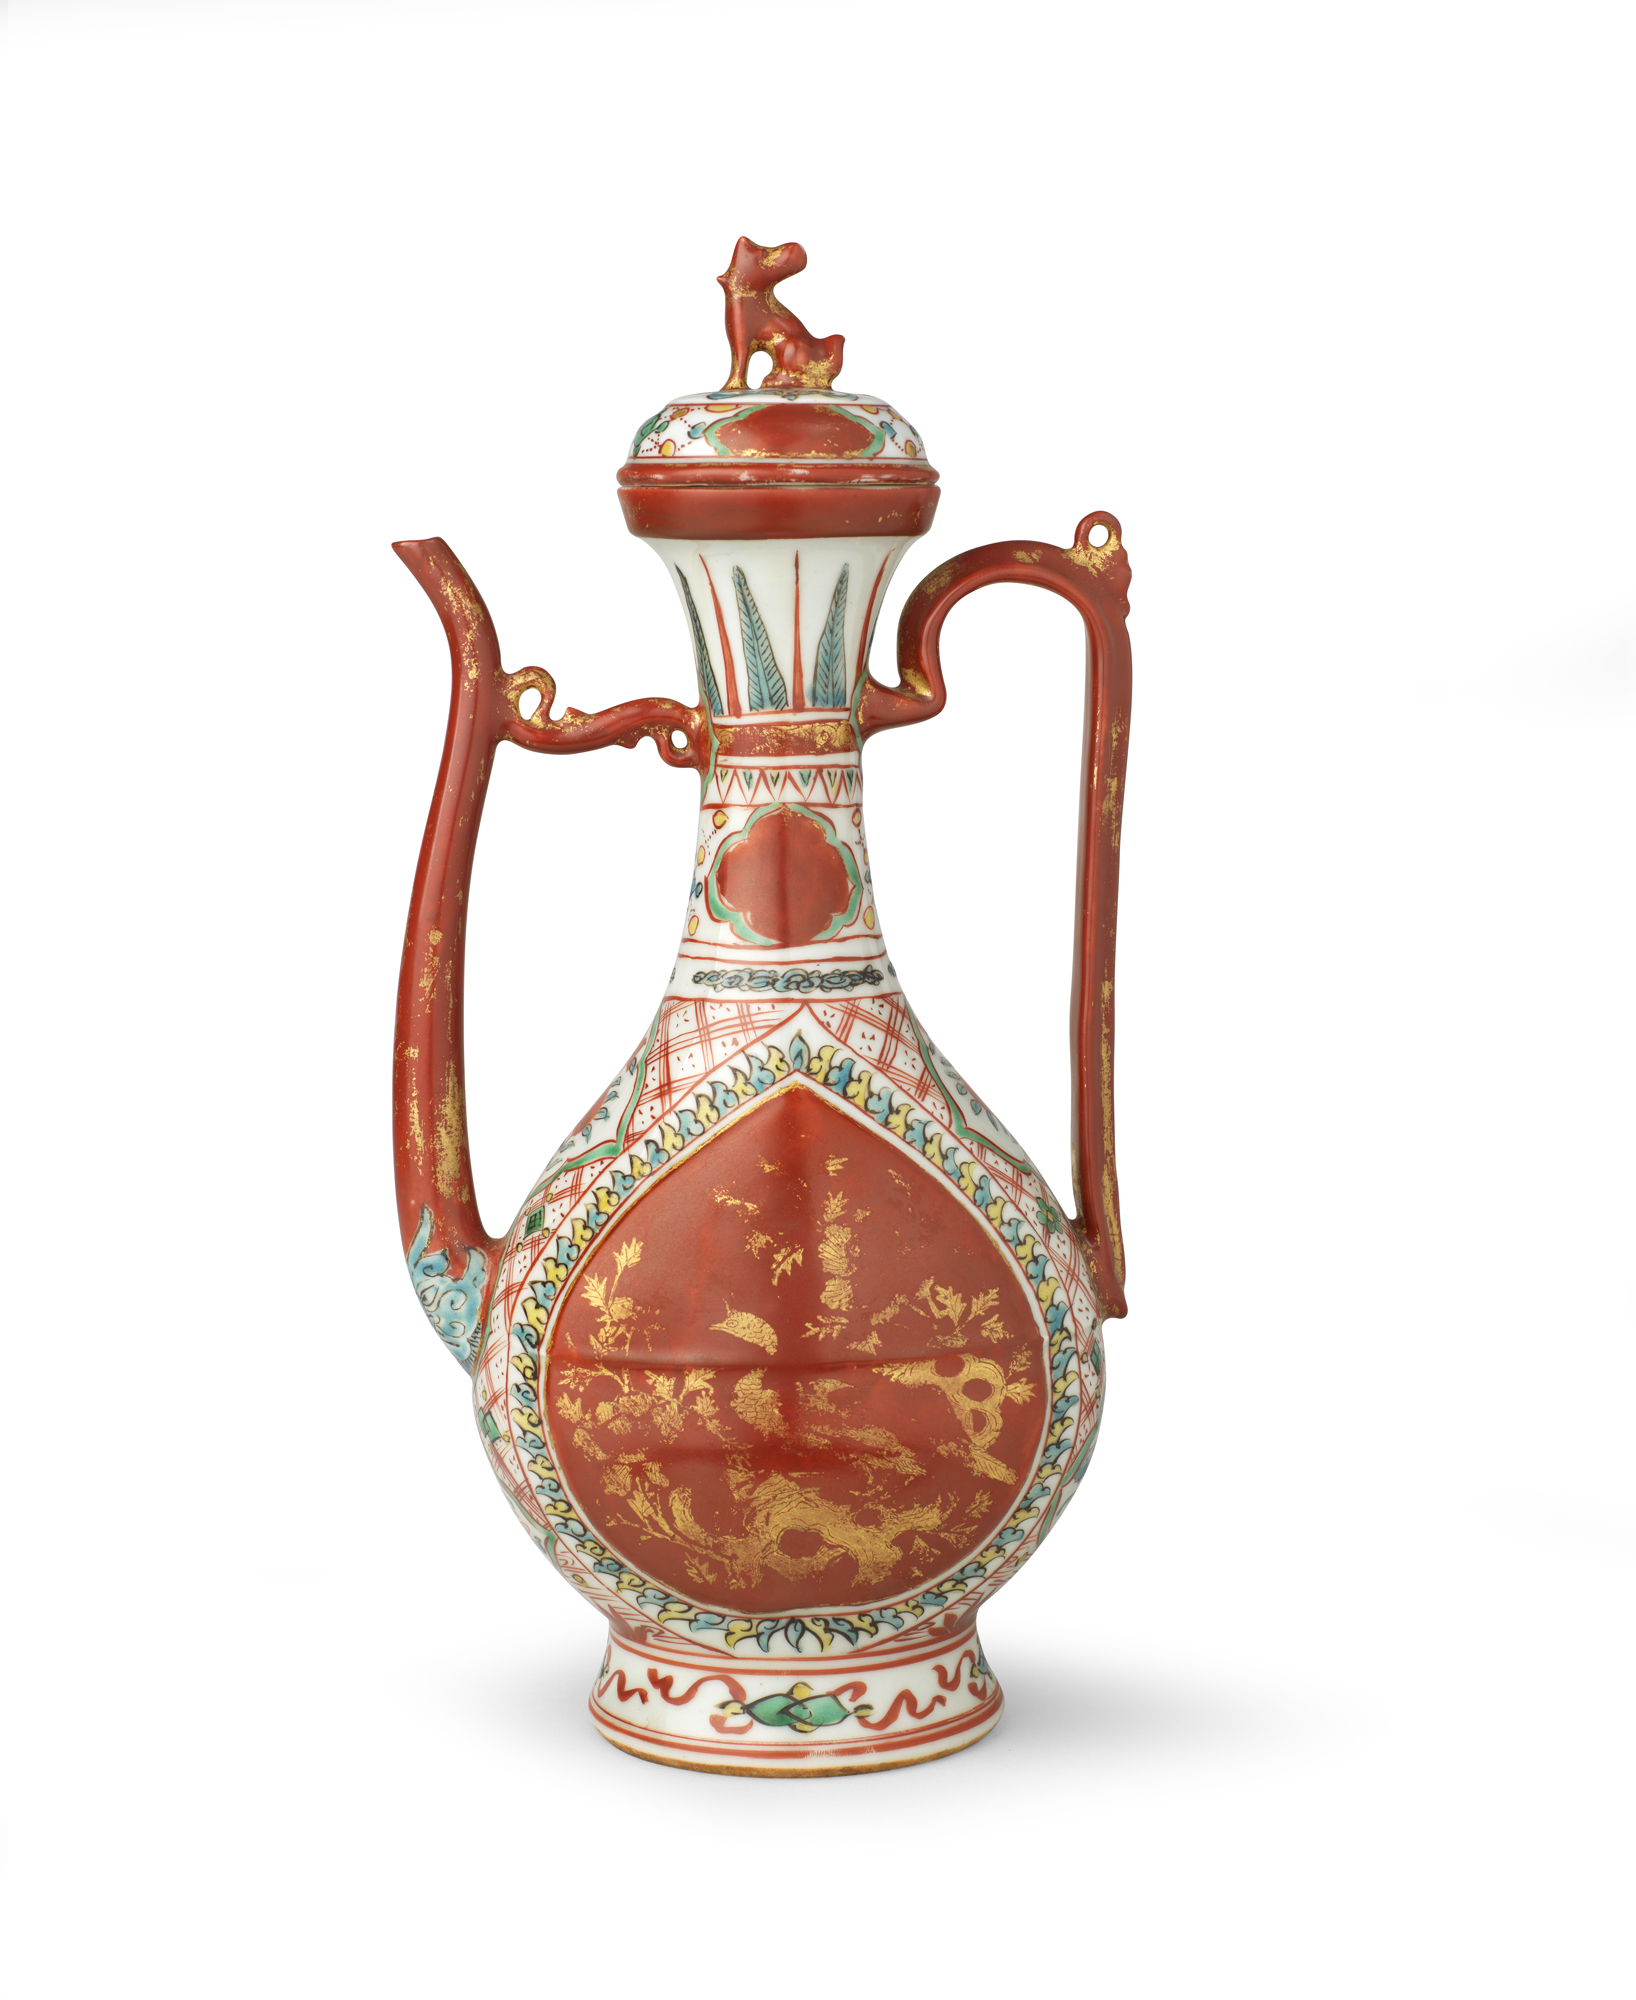 Porcelain decorated in overglaze iron-red, black, turquoise, green and yellow enamels and gold China — Ming dynasty (1368–1644), 16th century H. 29 L. 14.5 cm